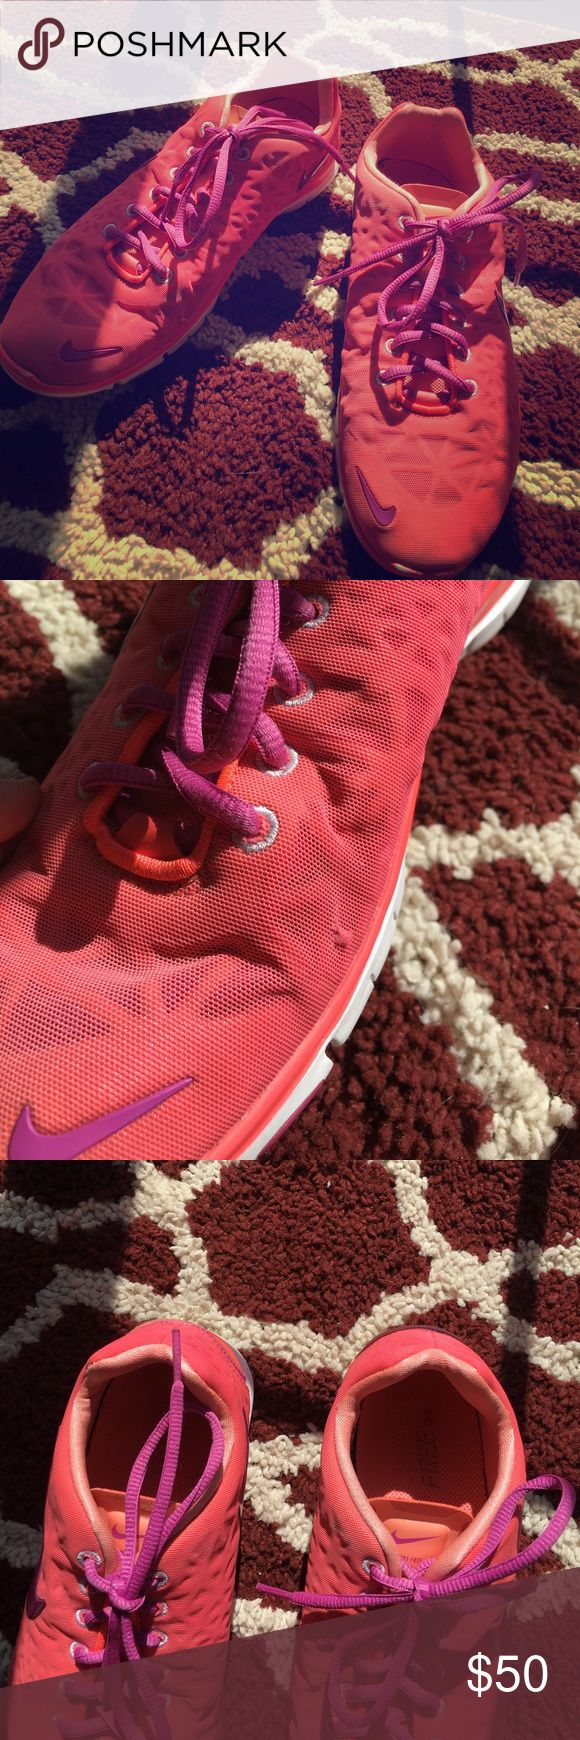 NIKE FREE TR FIT 3 Nike cross training shoes can be worn for cardio or lifting. Small nick on the side of the right foot. And a little color missing from the tip of the plastic part. Will take best bid for them. Nike Shoes Sneakers